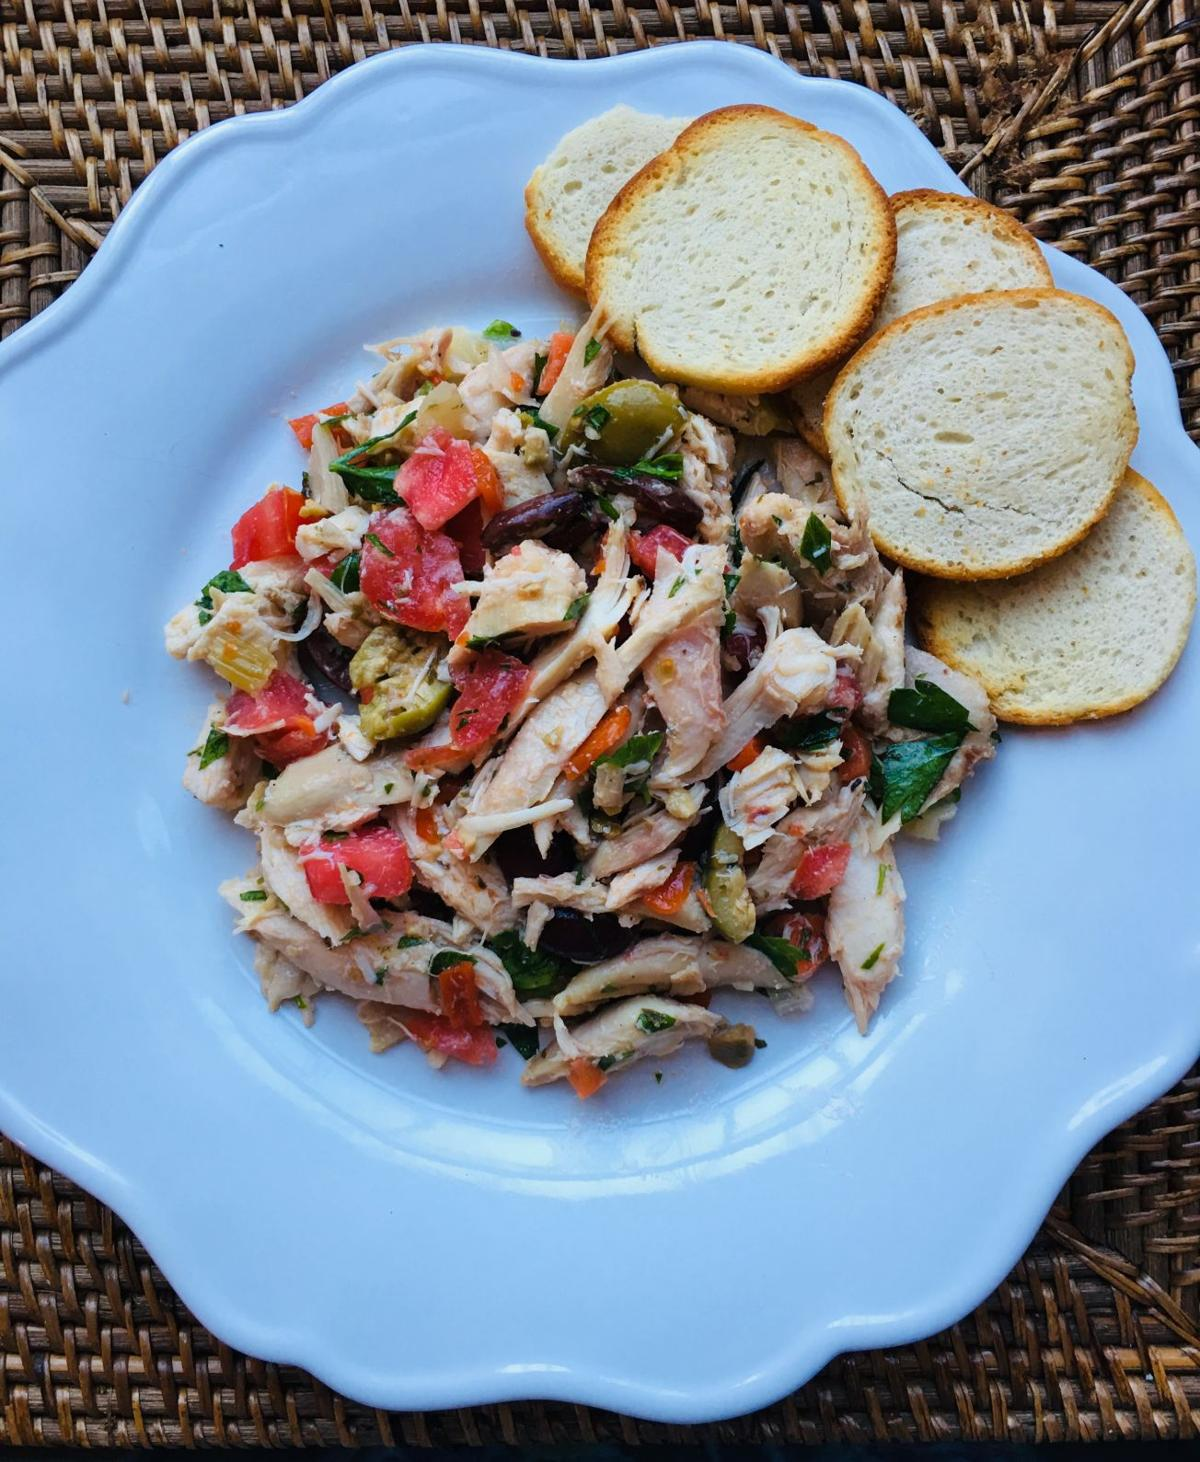 Olive salad with chicken 2 by Judy Walker.jpg